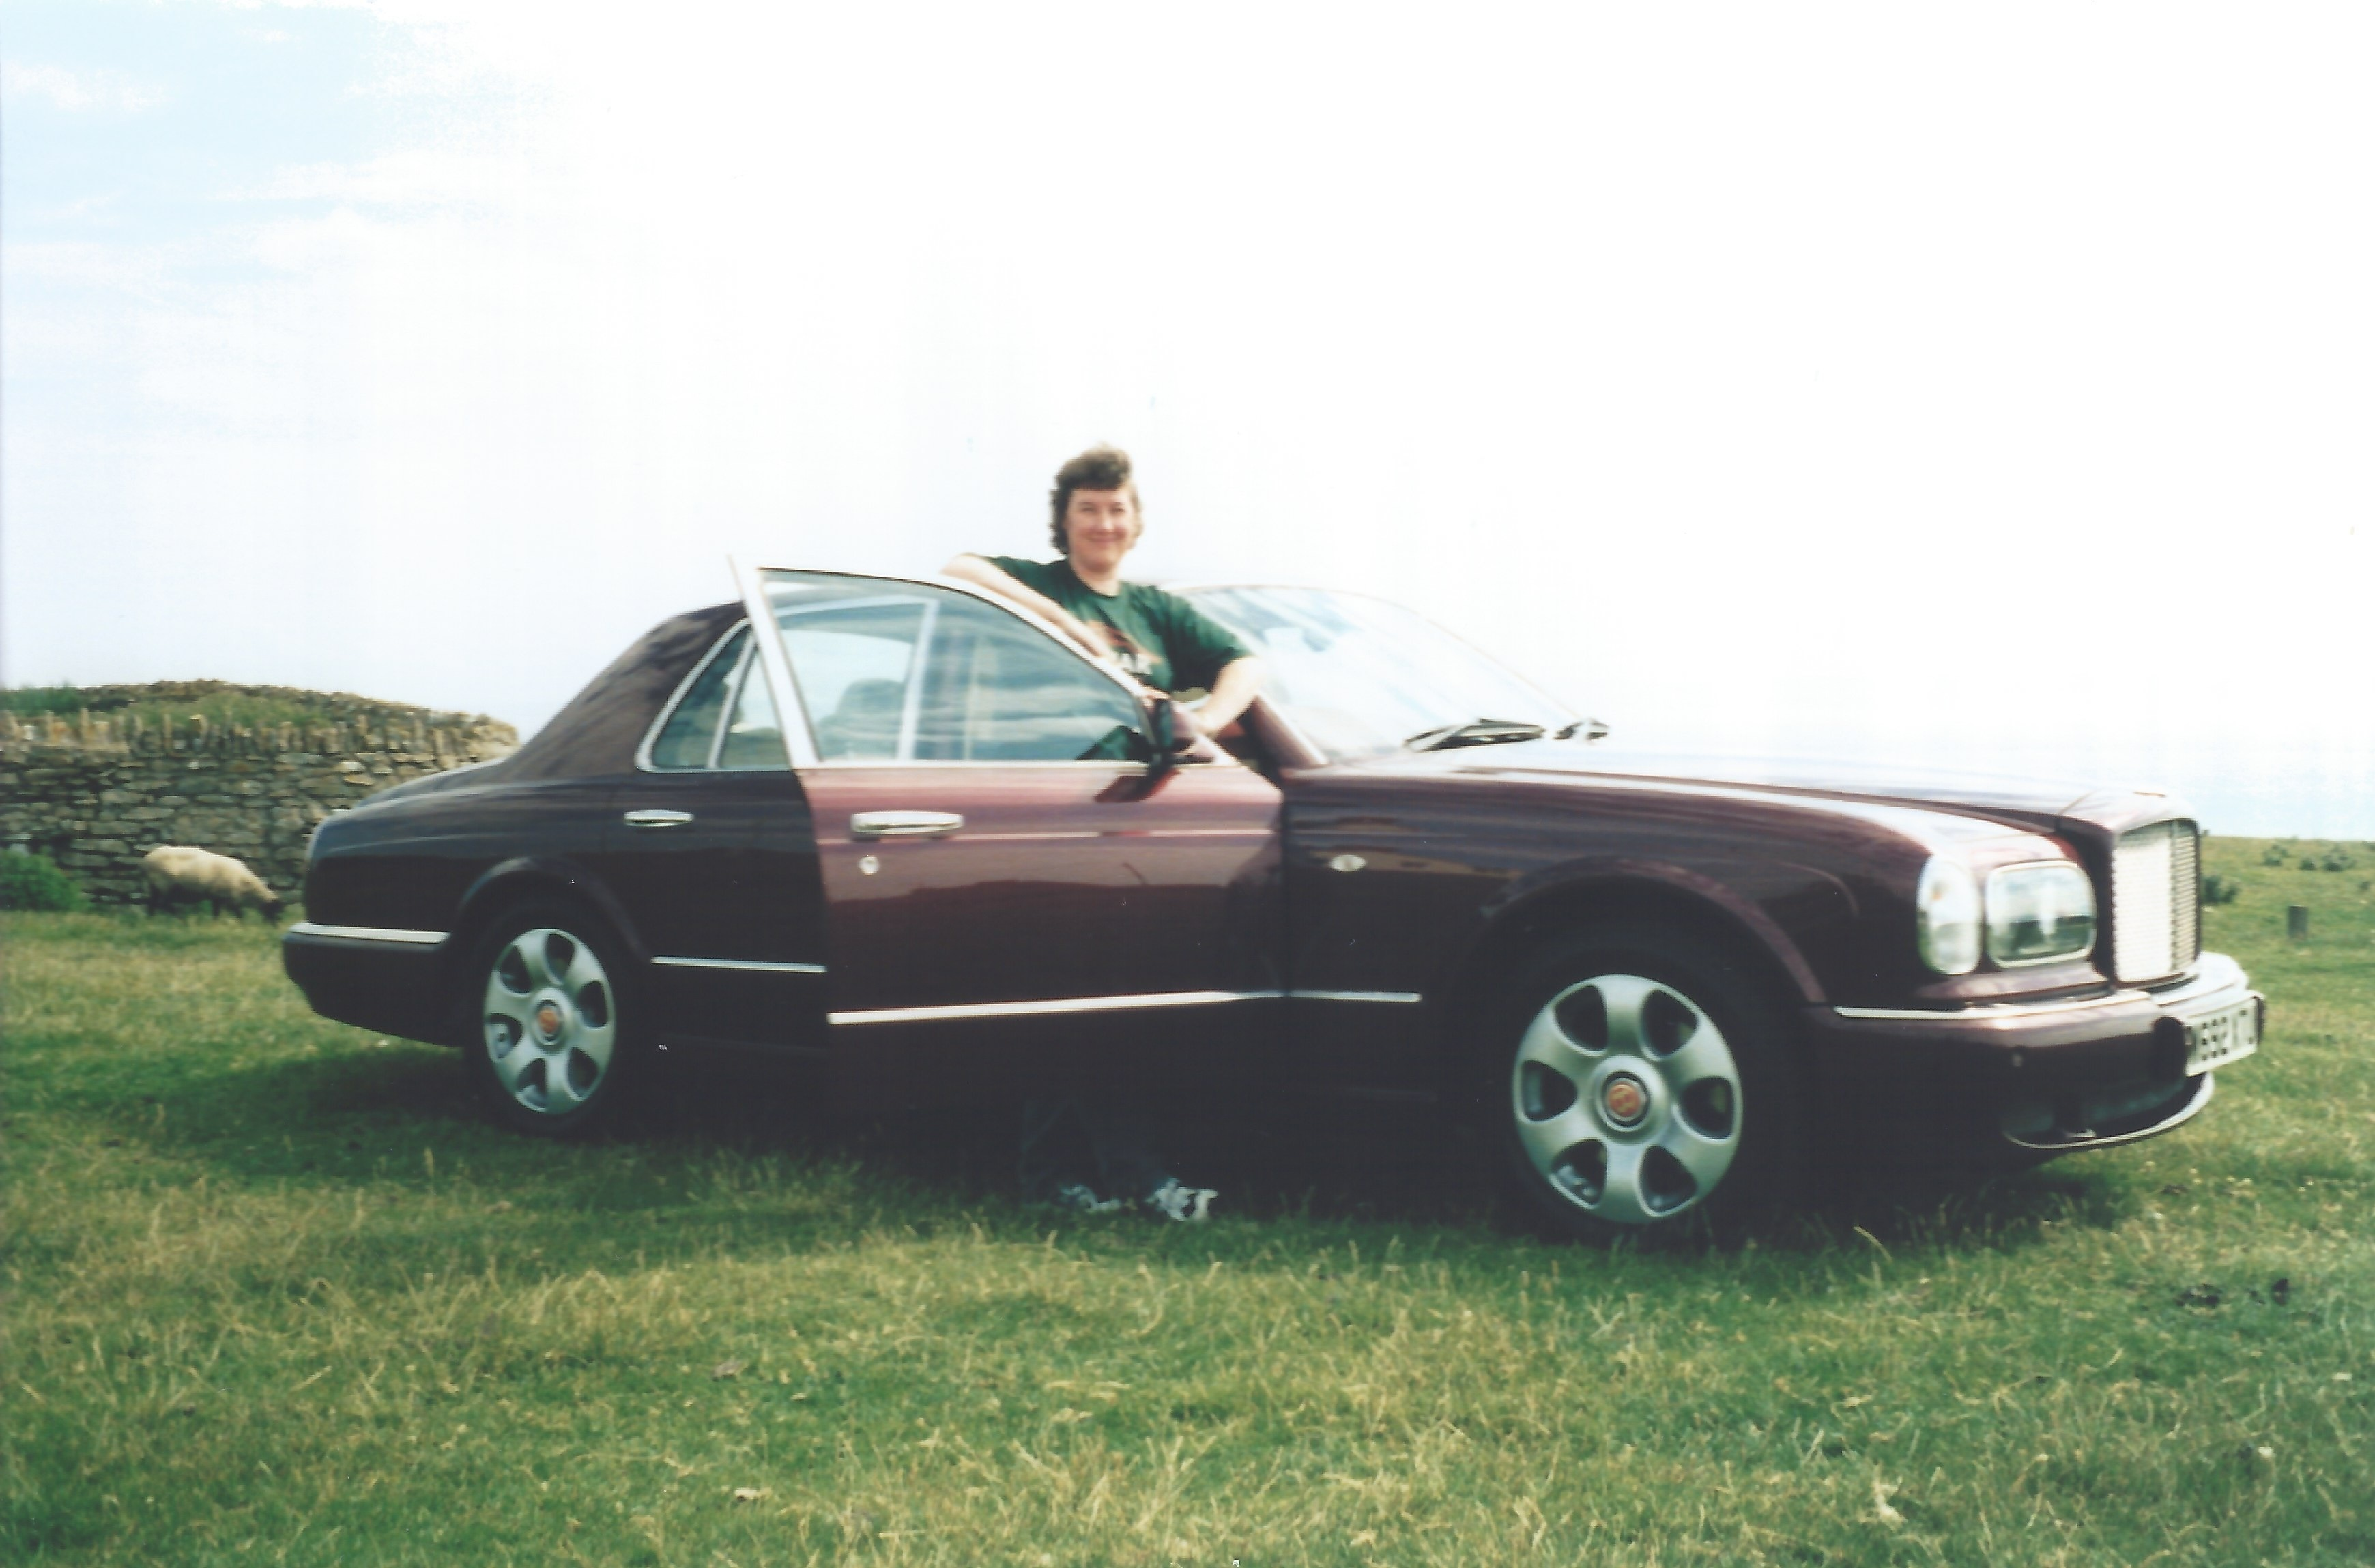 The author's wife stood ready to get in a dark mauve Bentley Arnage